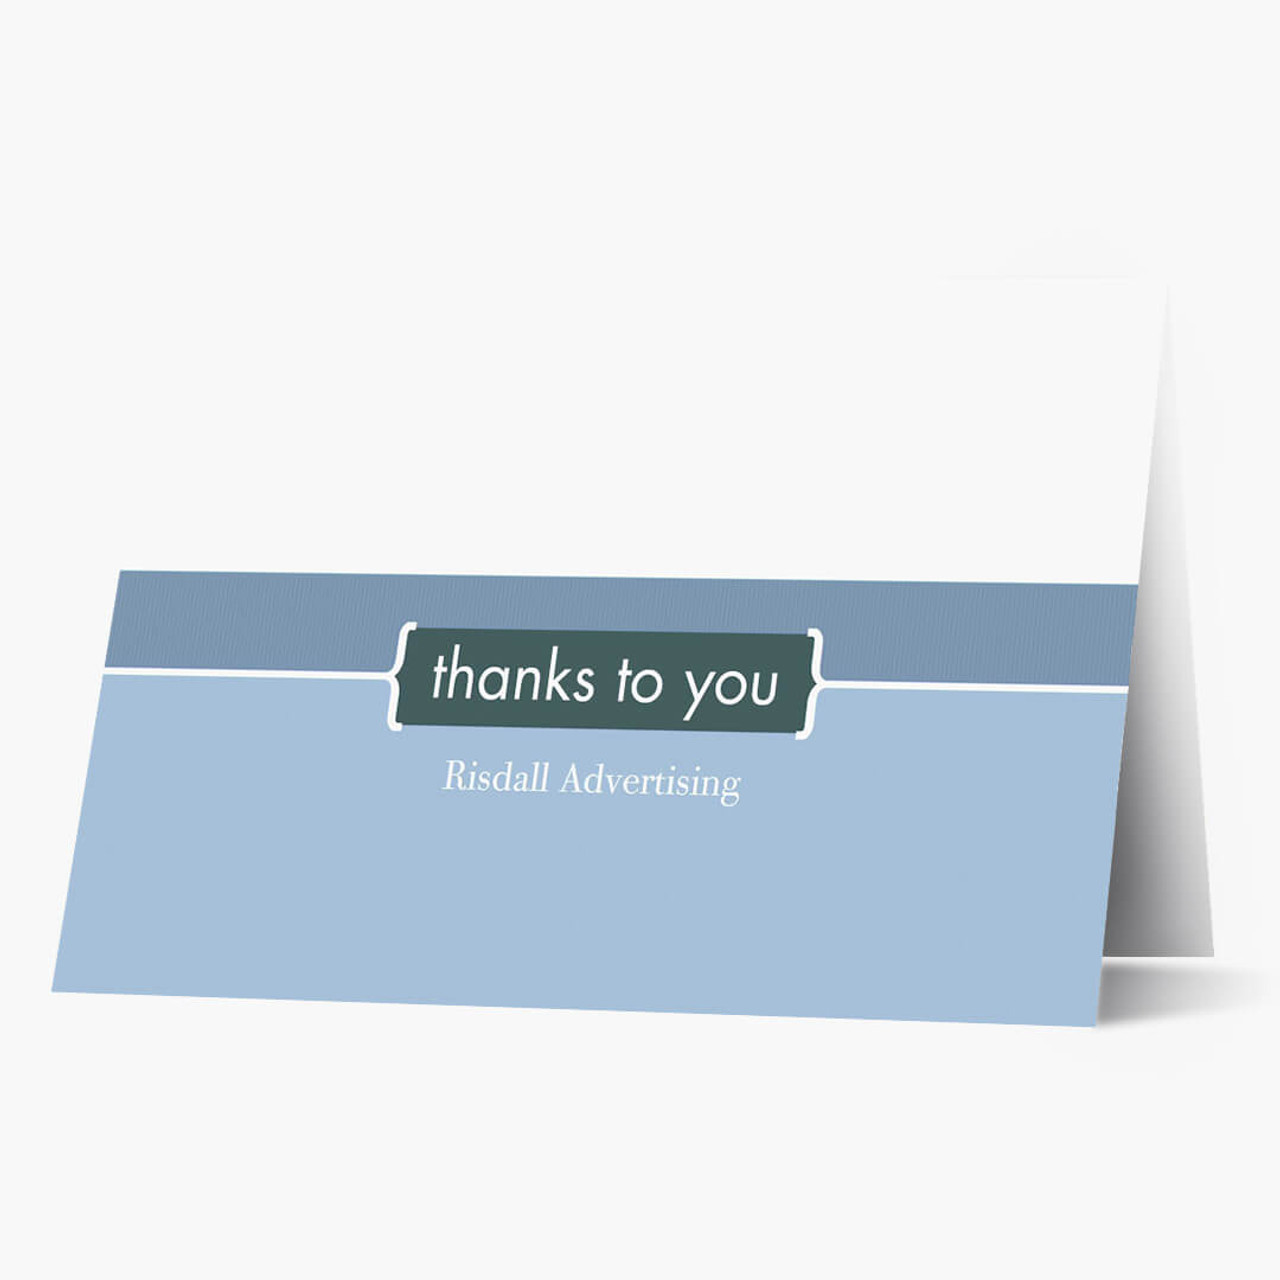 Thanks to You